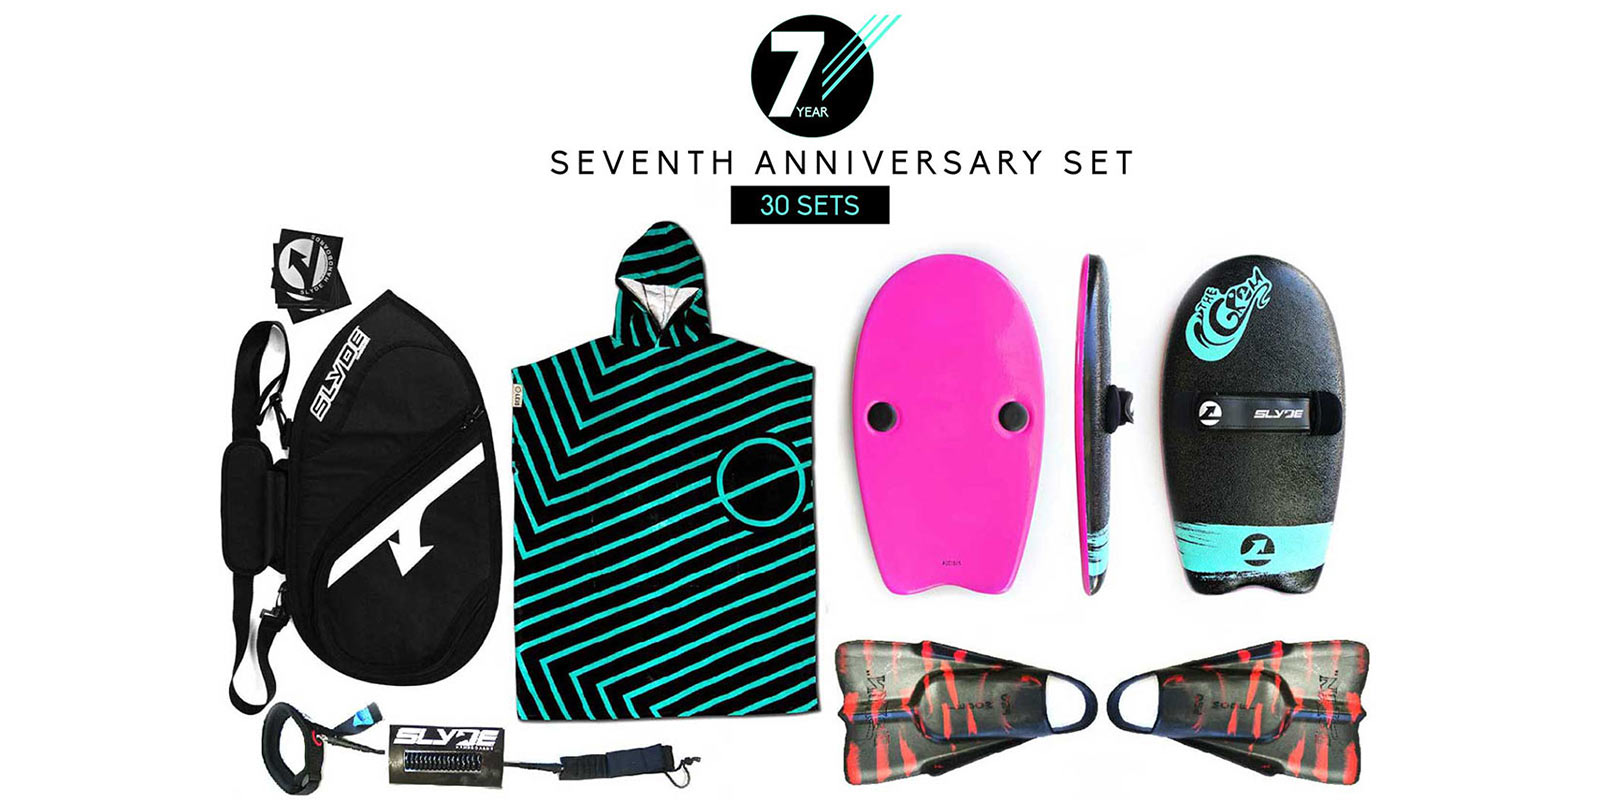 Slyde Handboards 7 Year Anniversary Celebration